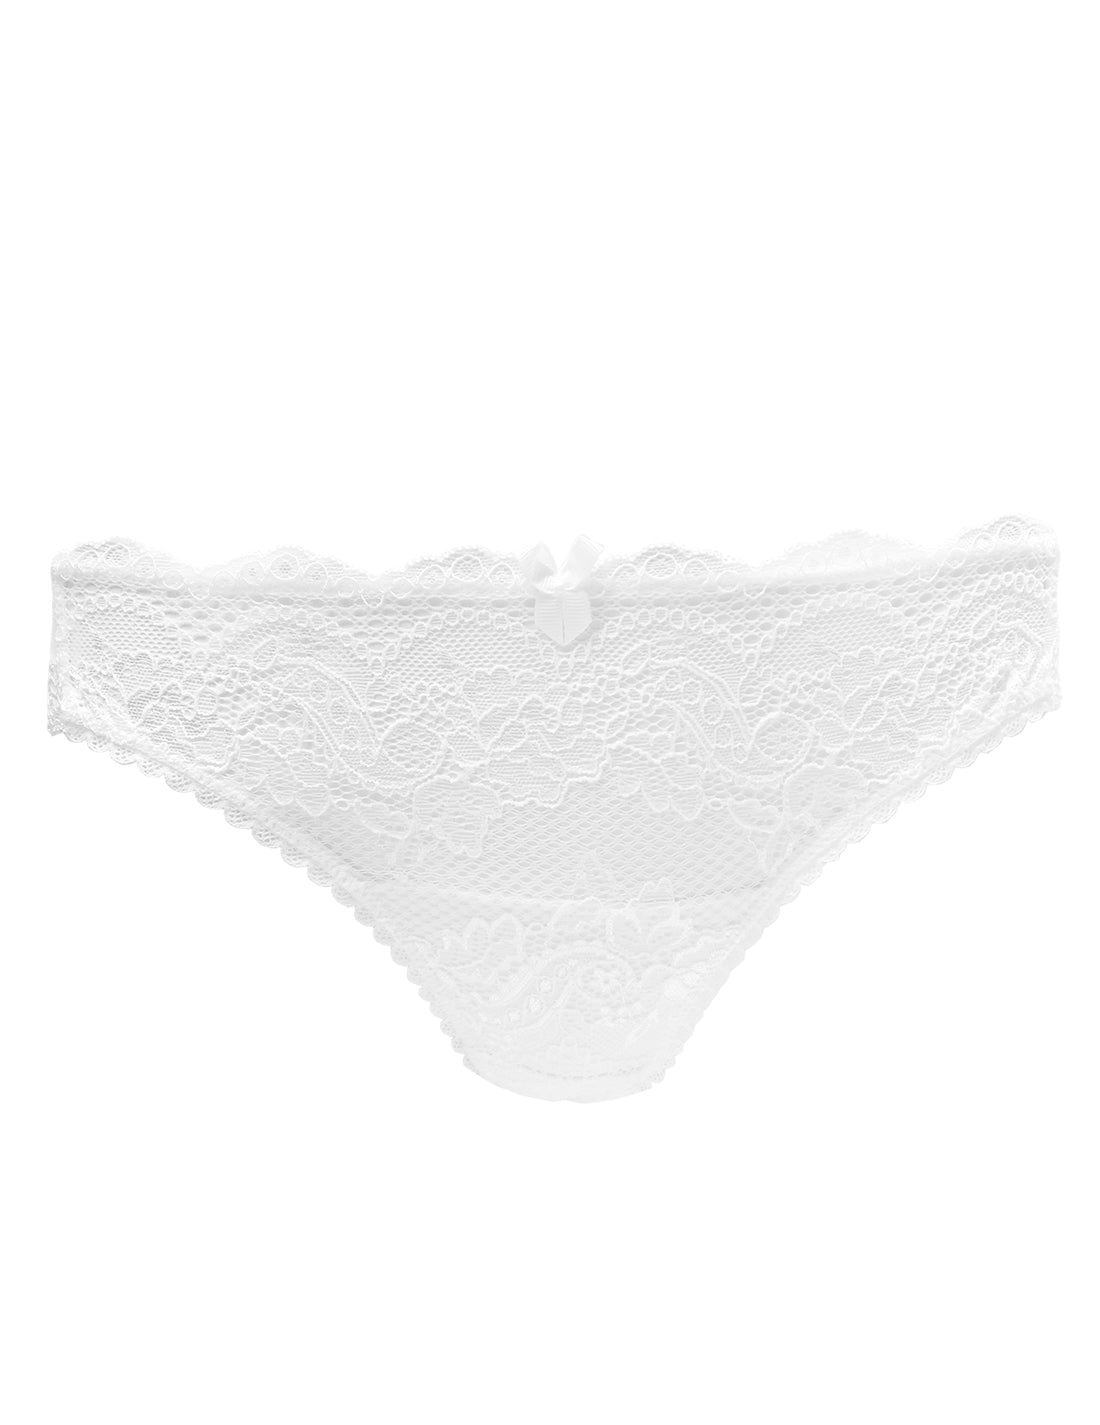 White Lace Bridal Brief Knickers | Mimi Holliday Luxury Lingerie